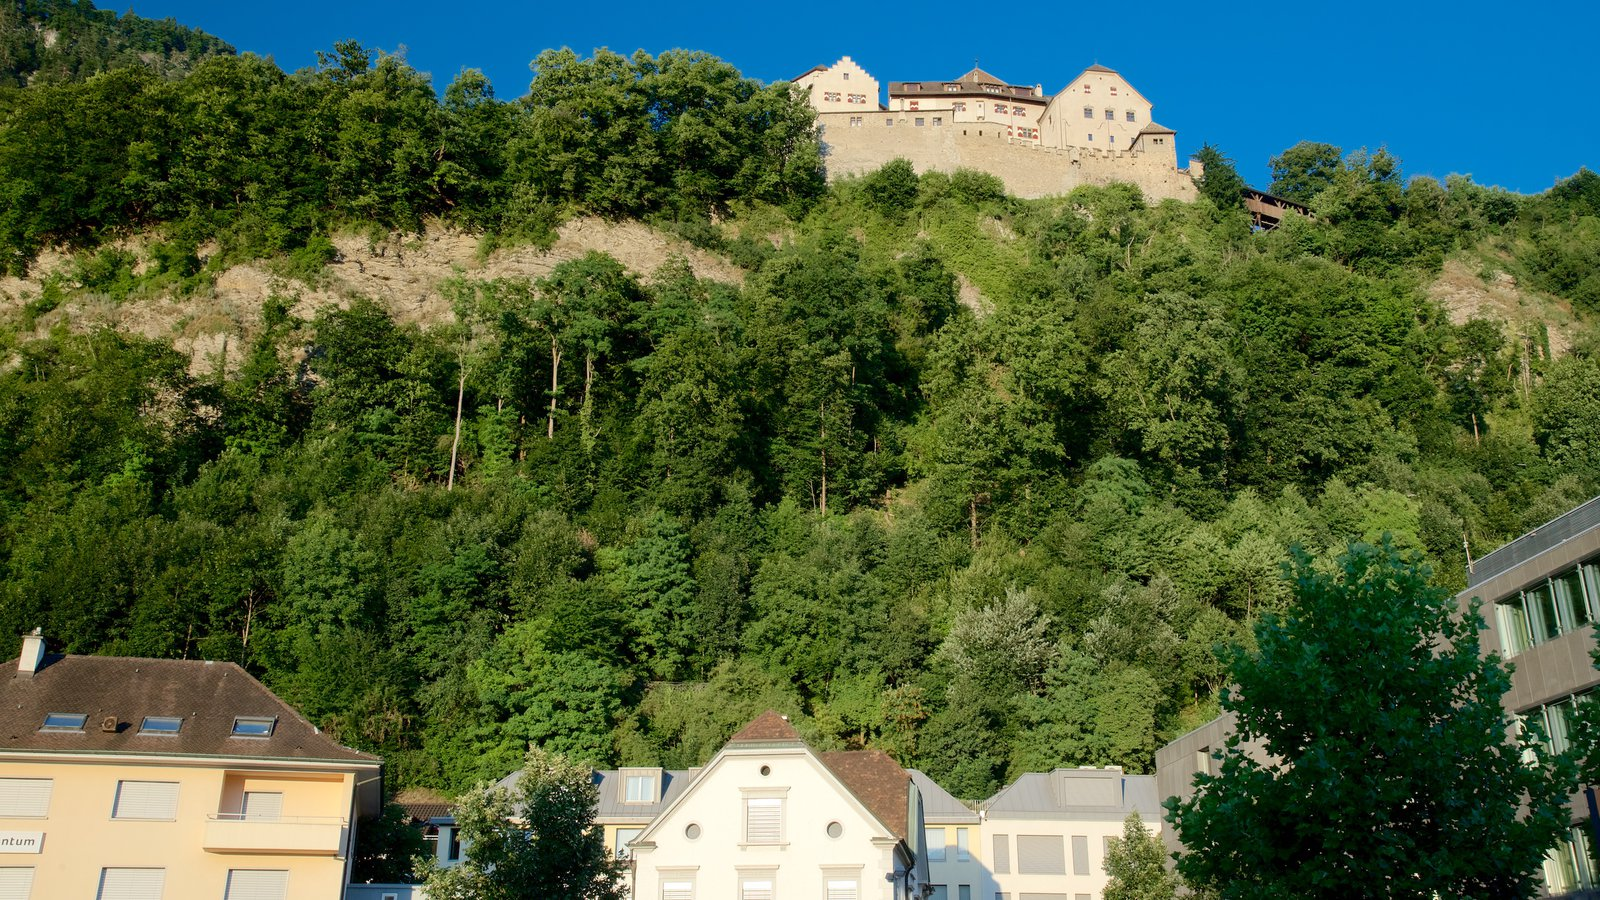 castles palaces pictures view images of liechtenstein